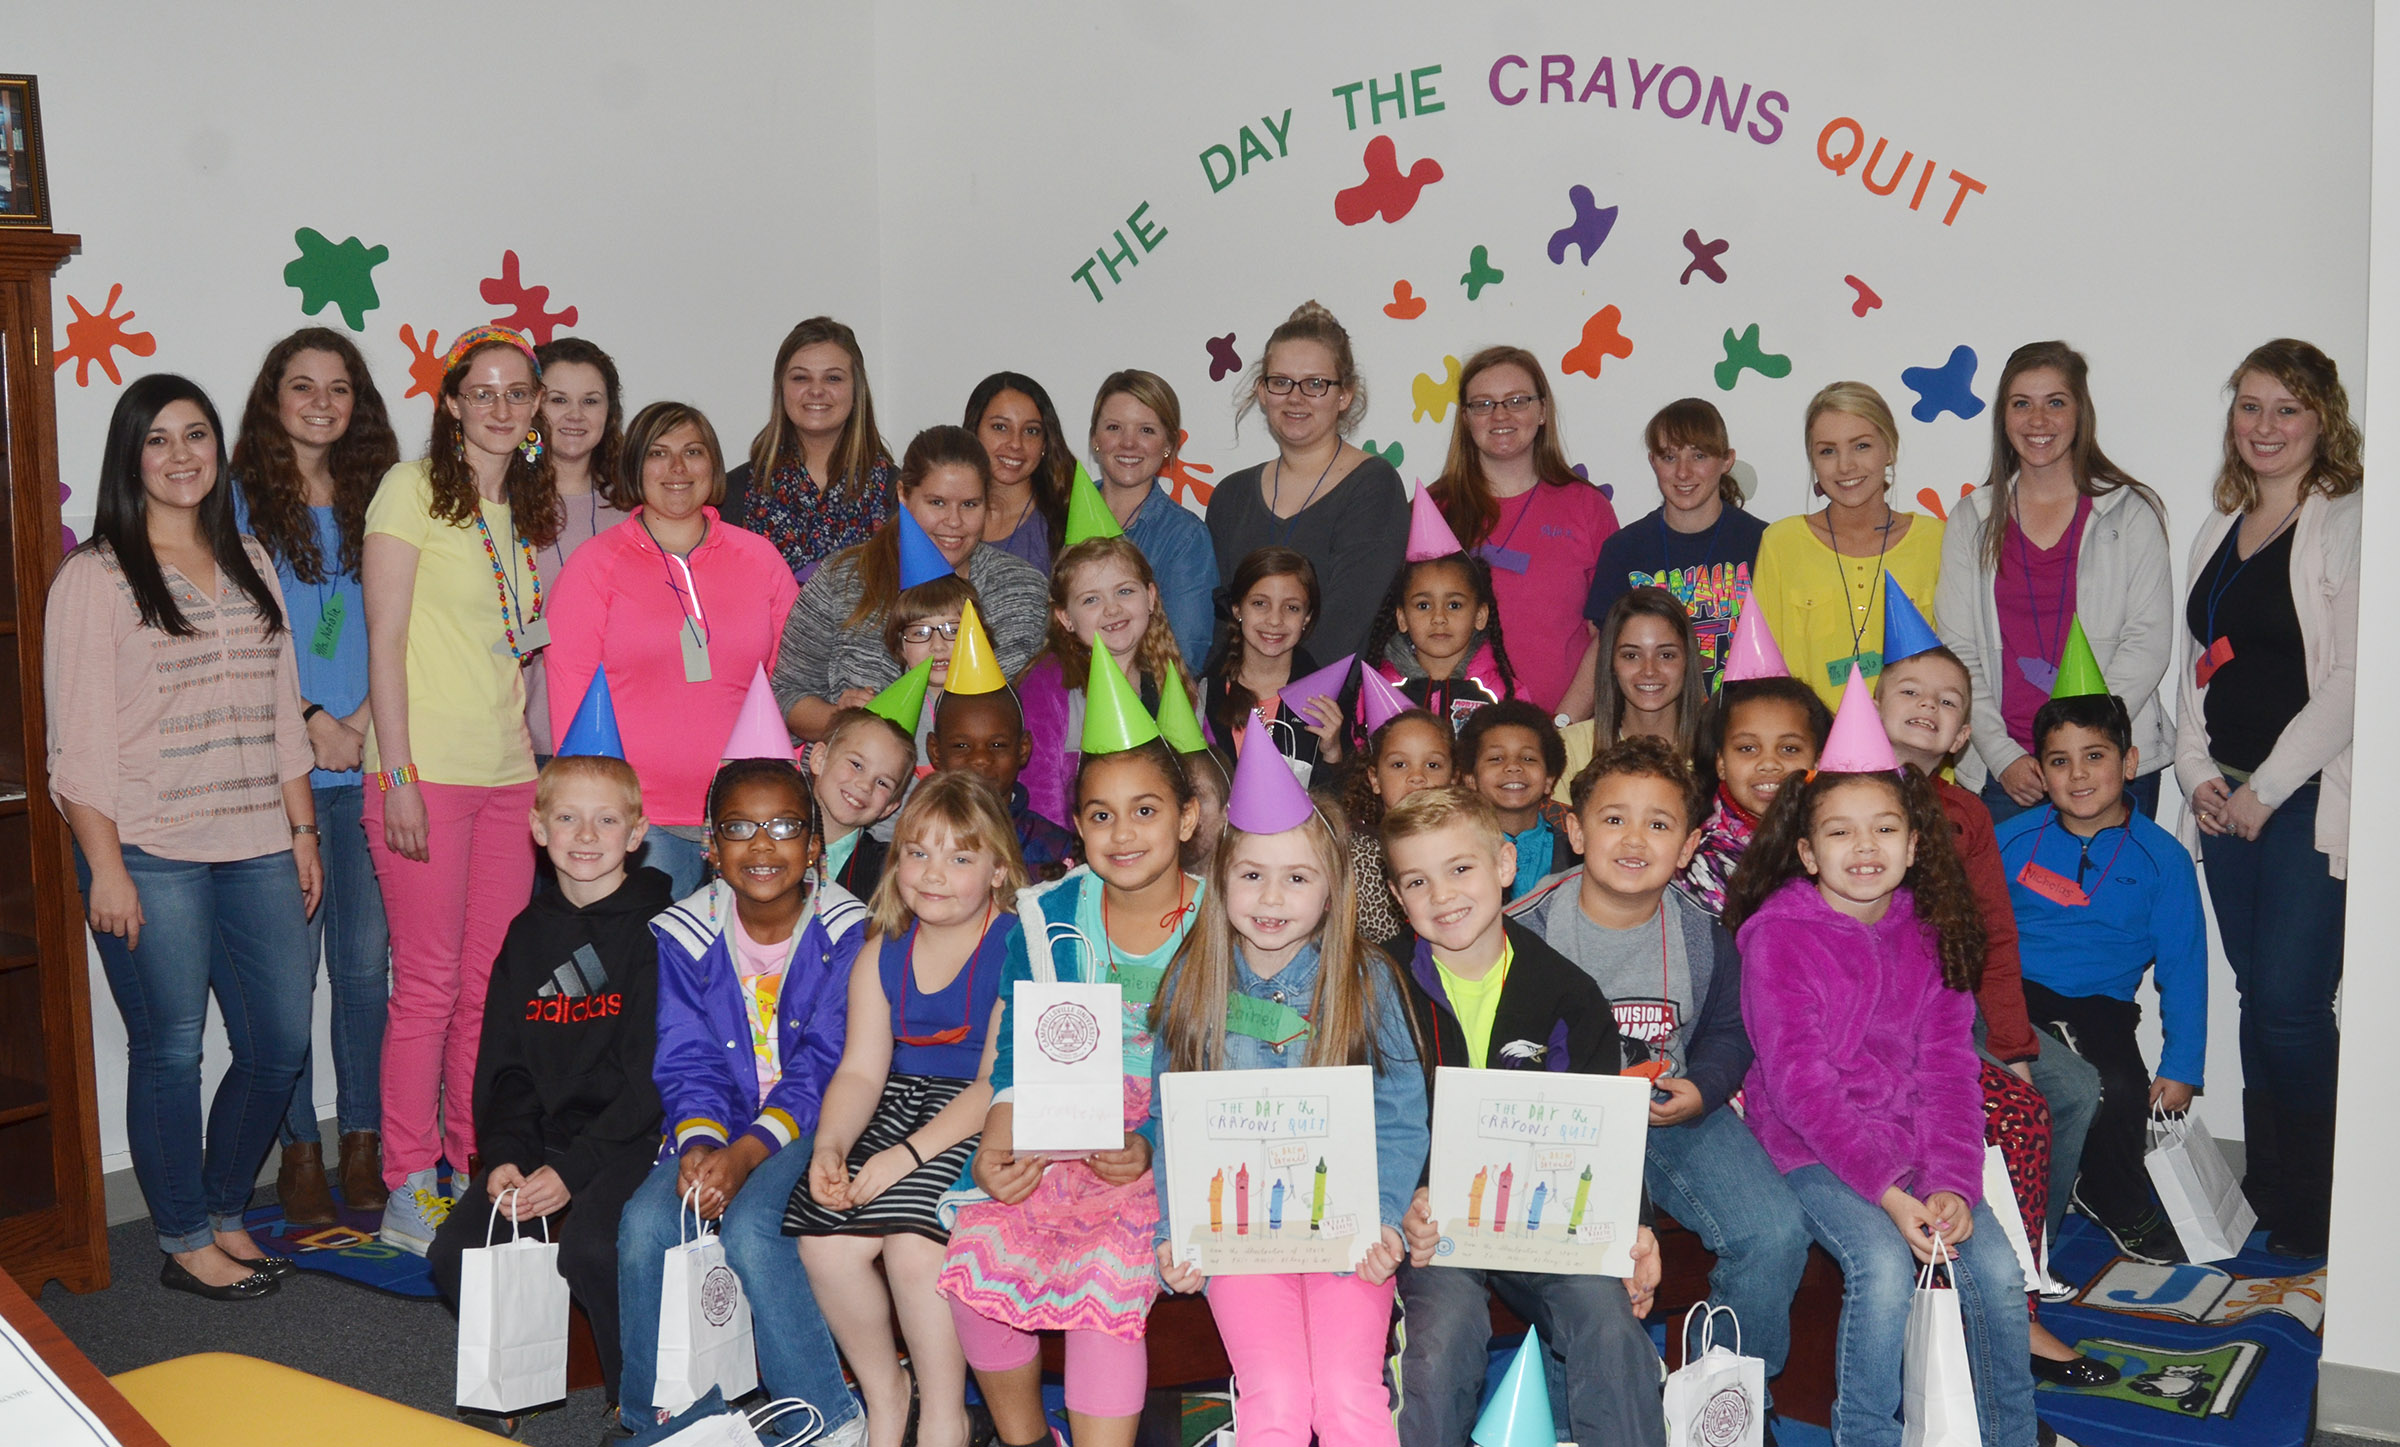 CES first-grade teacher Hailey Ogle, at left, and her students pose for a photo with CU education students.